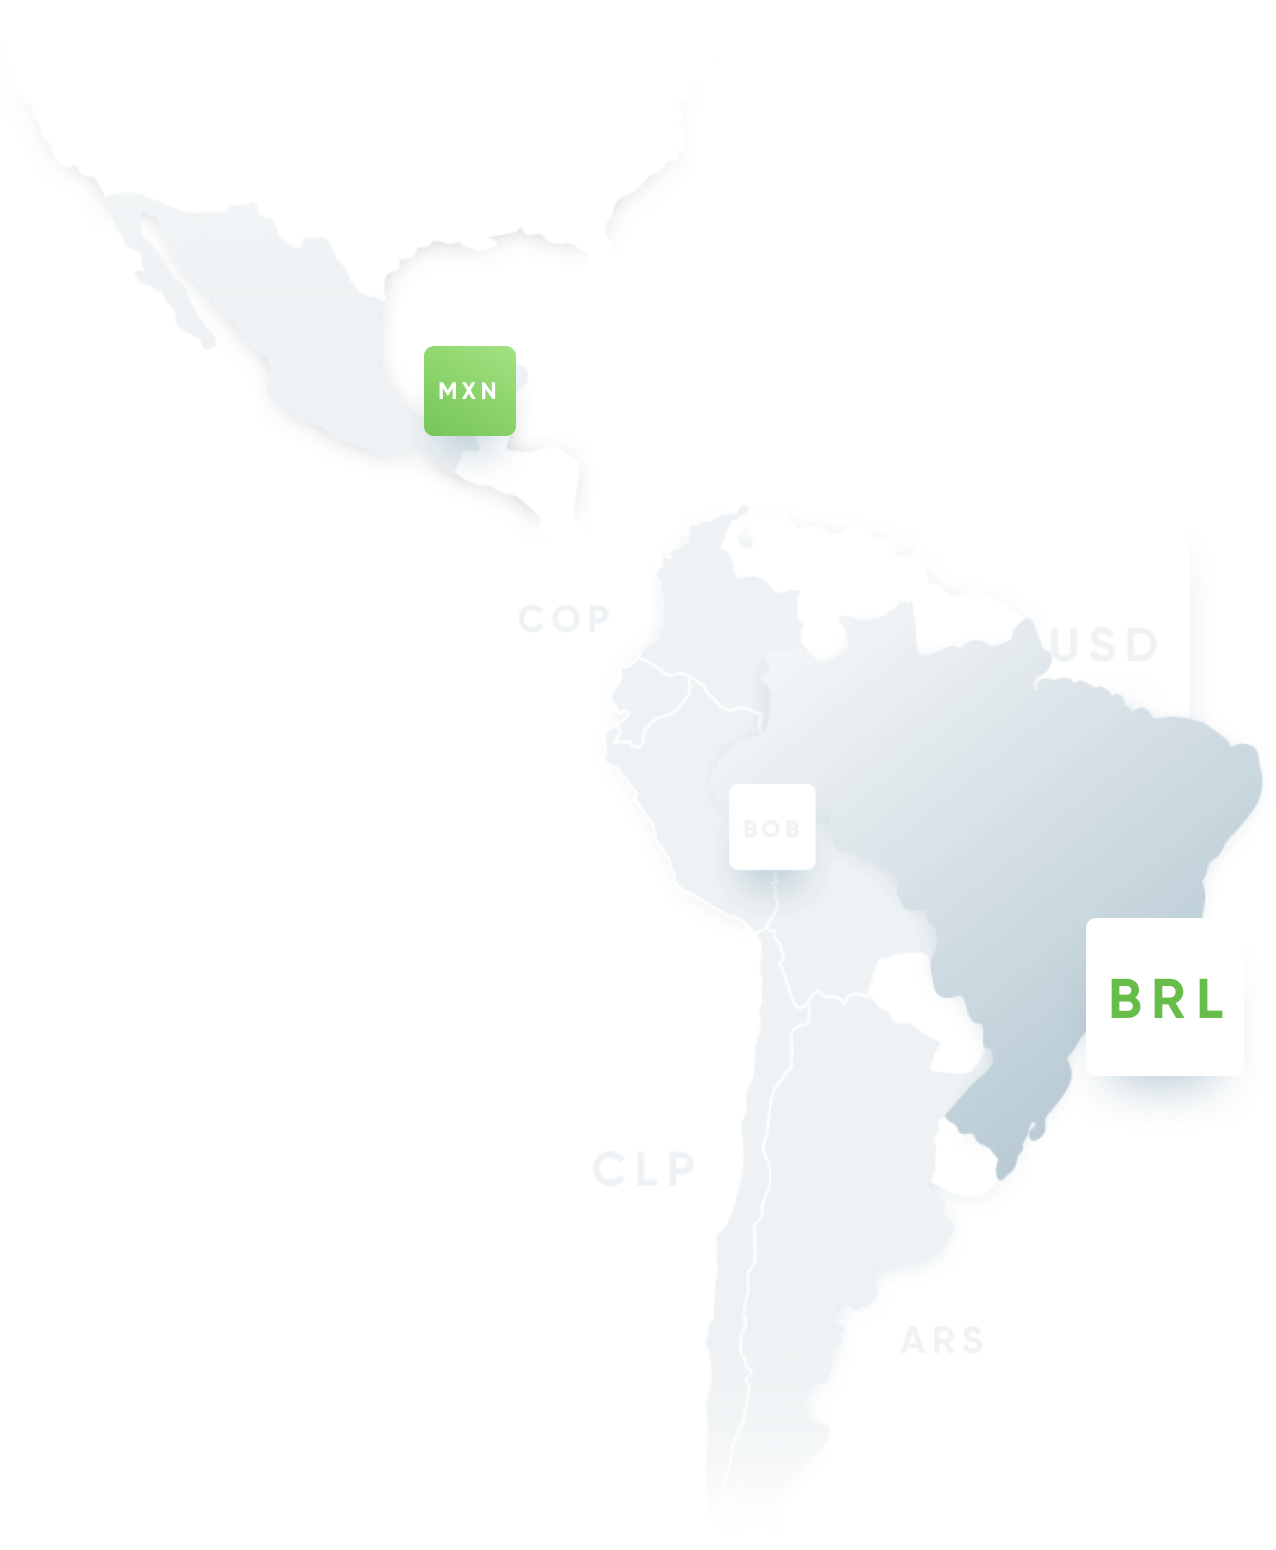 Conquer Latin America with EBANX